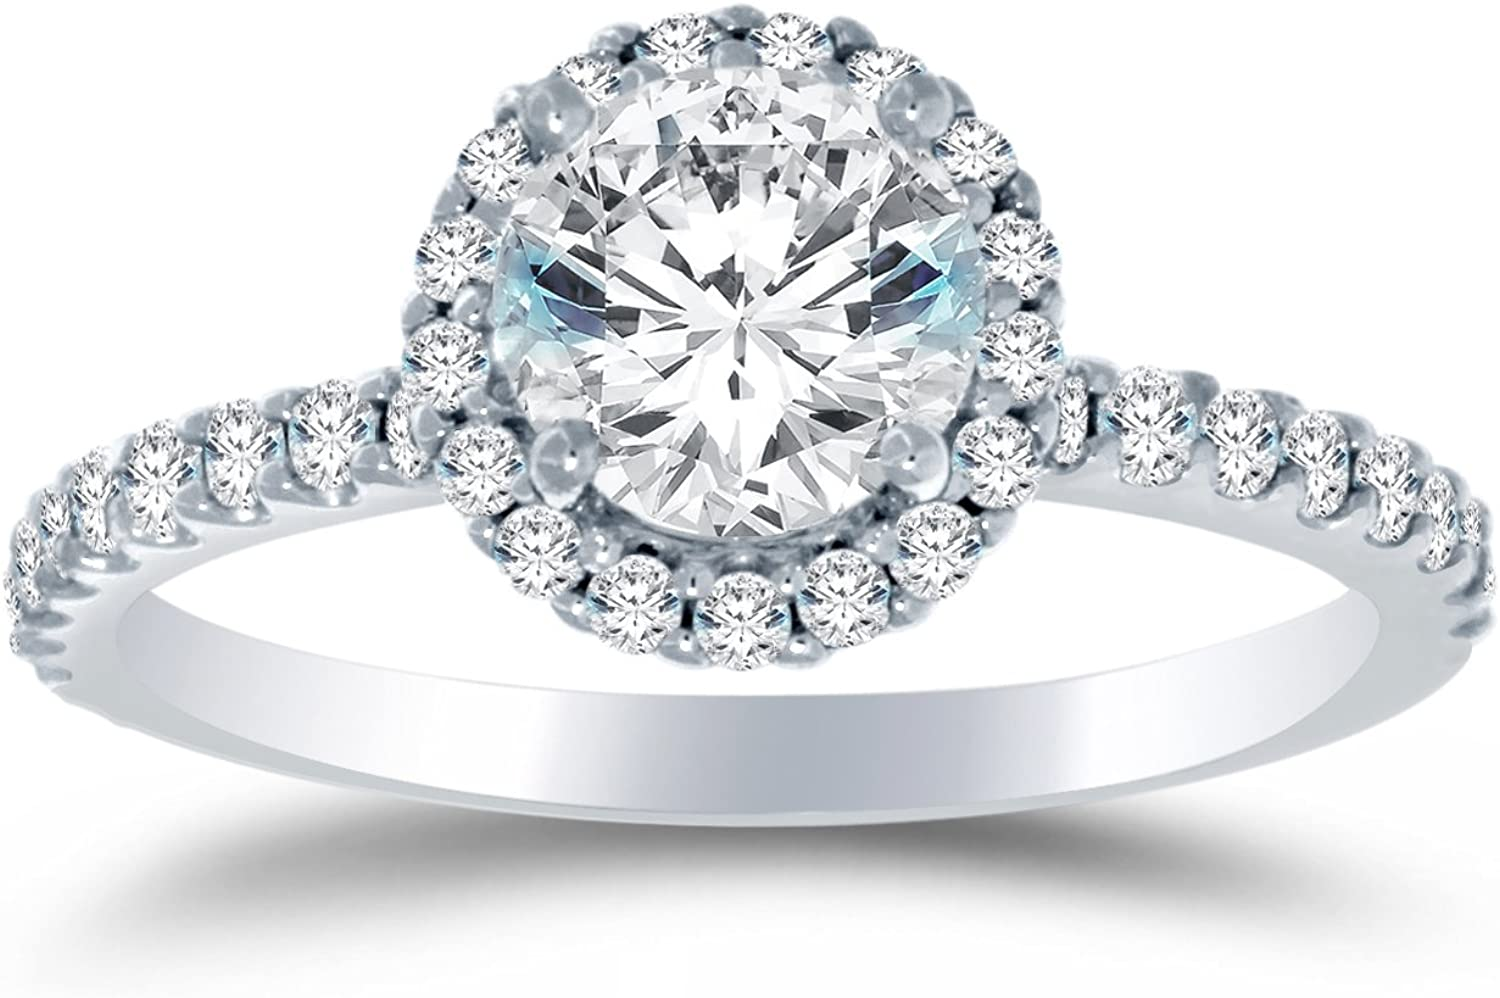 - Available in all ring sizes 4-9.5 /& Comes With Elegant Velvet Ring Box Solid 925 Sterling Silver Highest Quality CZ Cubic Zirconia Engagement Ring Round Brilliant Cut Solitaire with Round Side Stones 1.5cttw., 1.0ct. Center